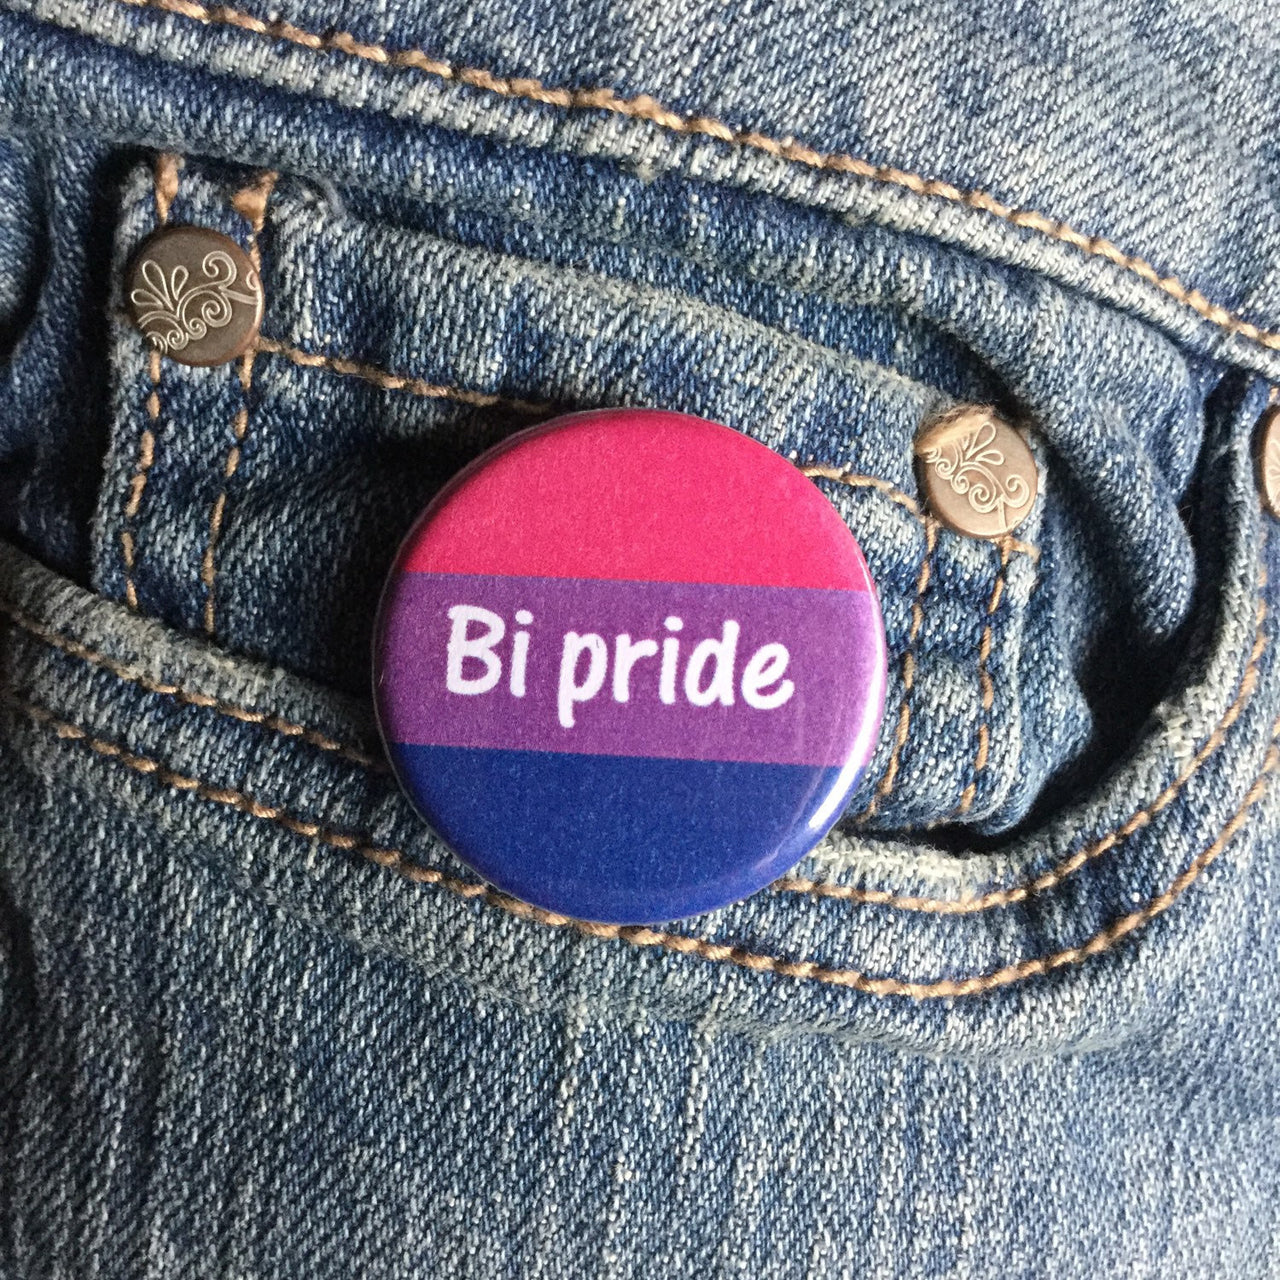 Bi Pride button - Radical Buttons